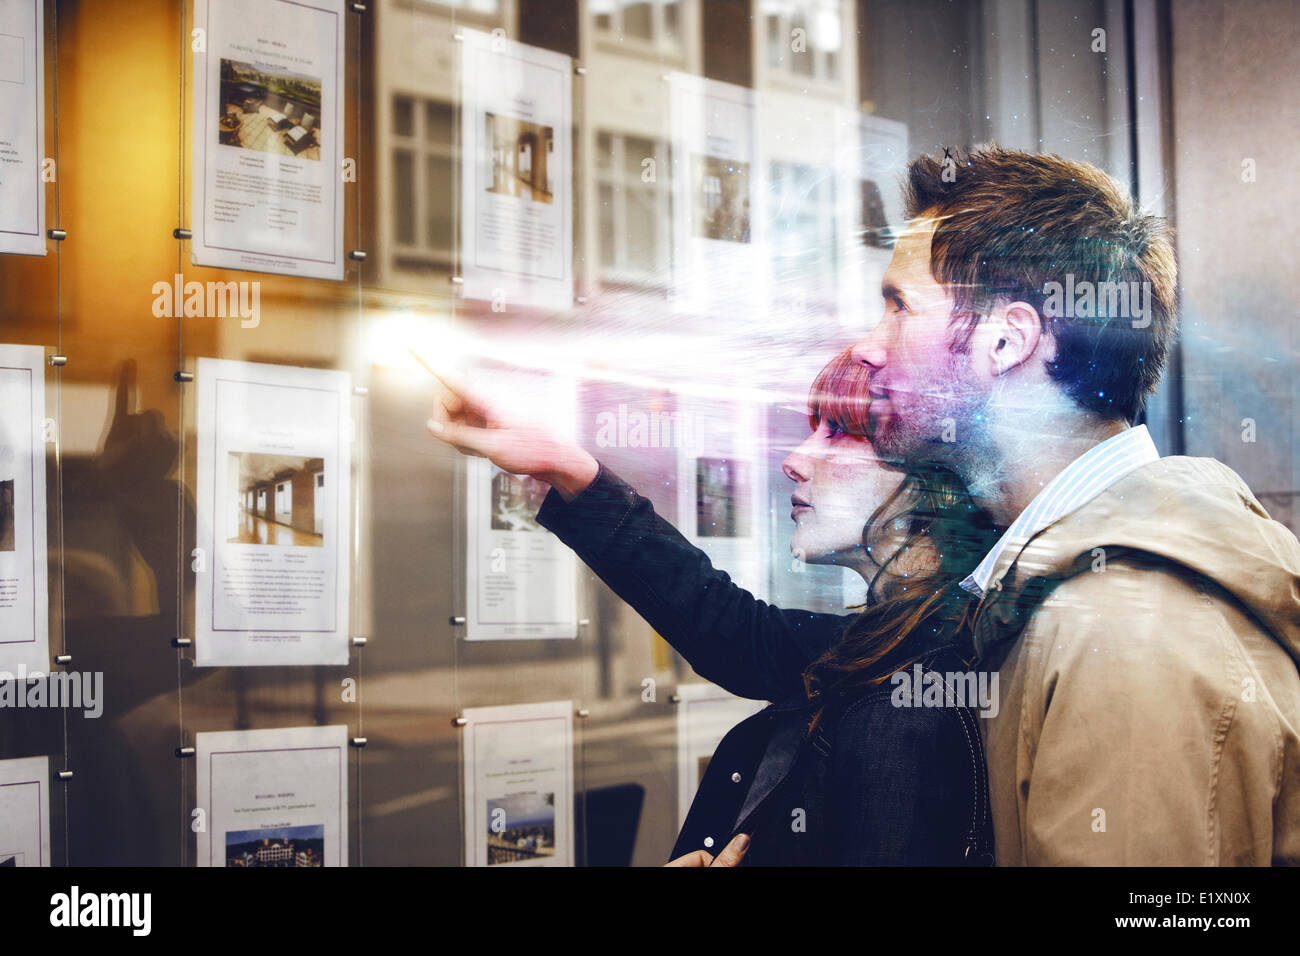 Couple discussing over travel pictures - Stock Image